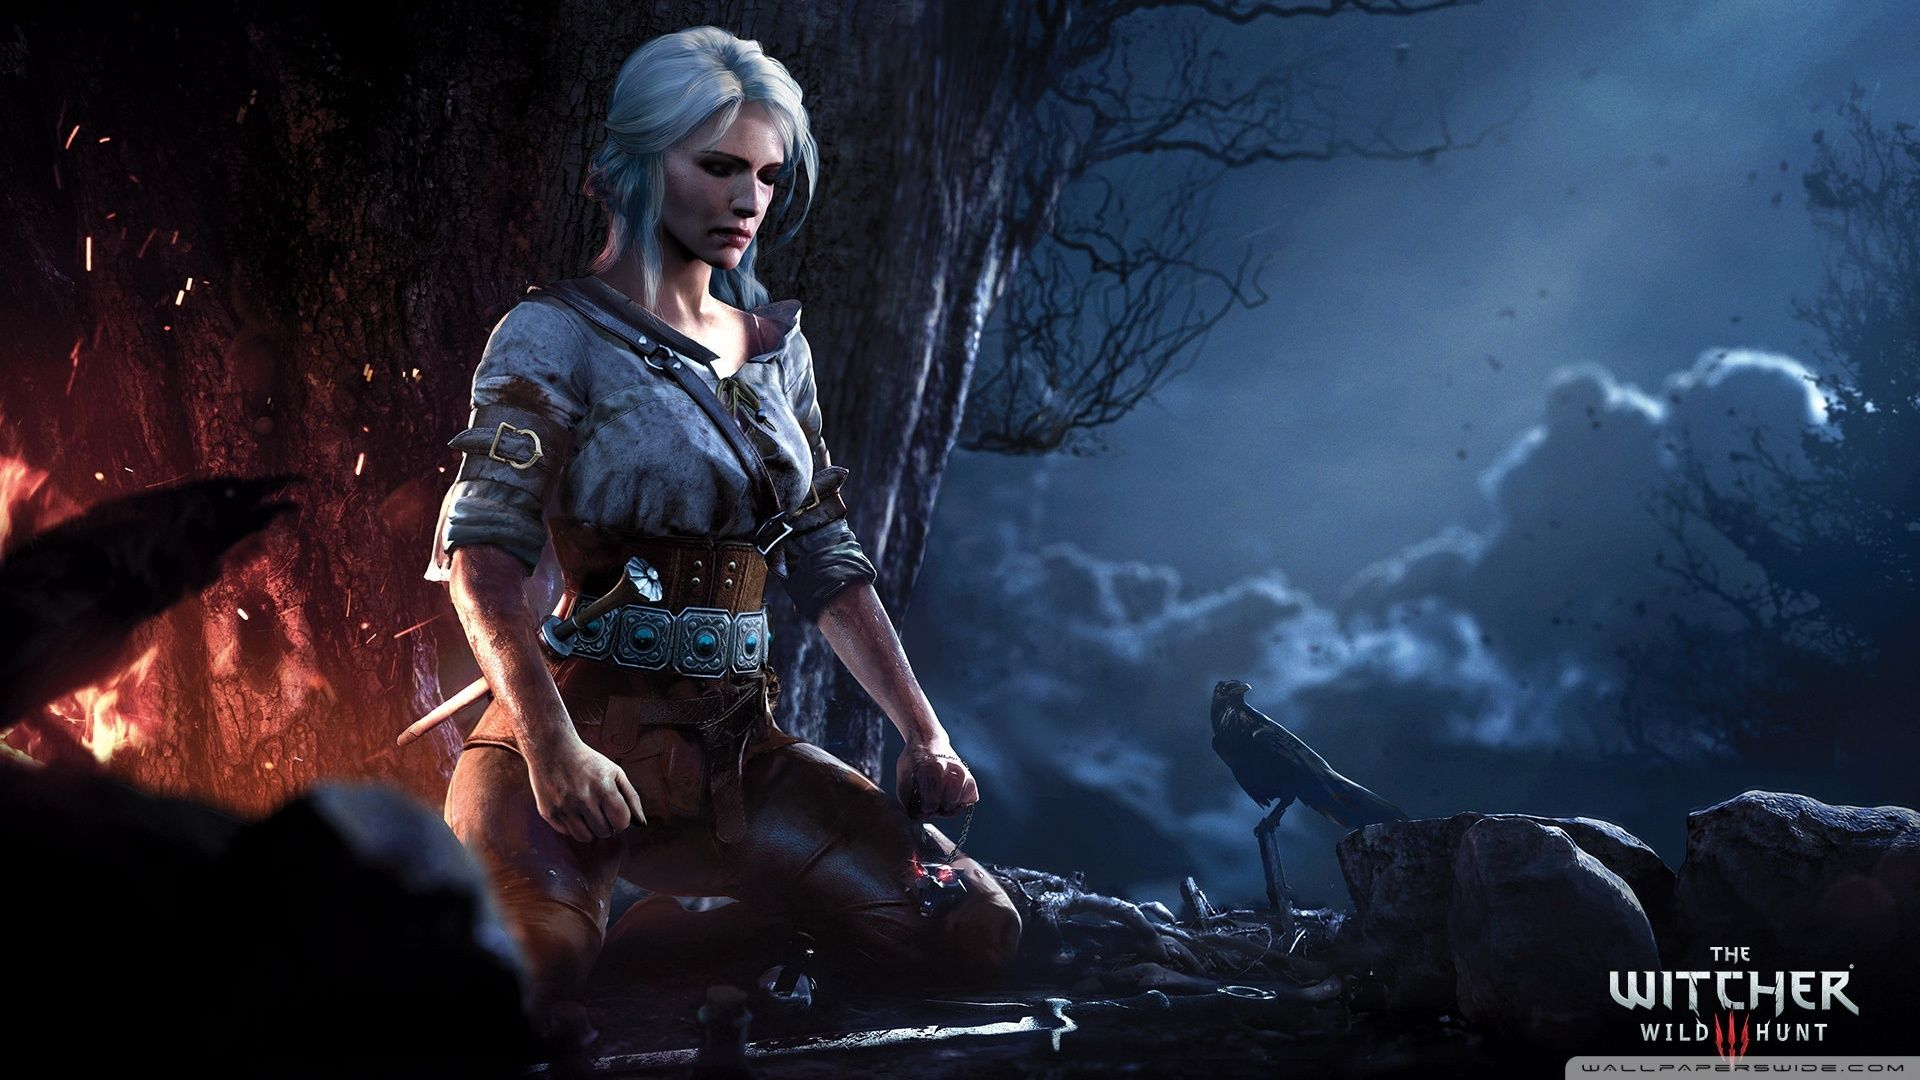 Witcher 3 Wallpapers Top Free Witcher 3 Backgrounds